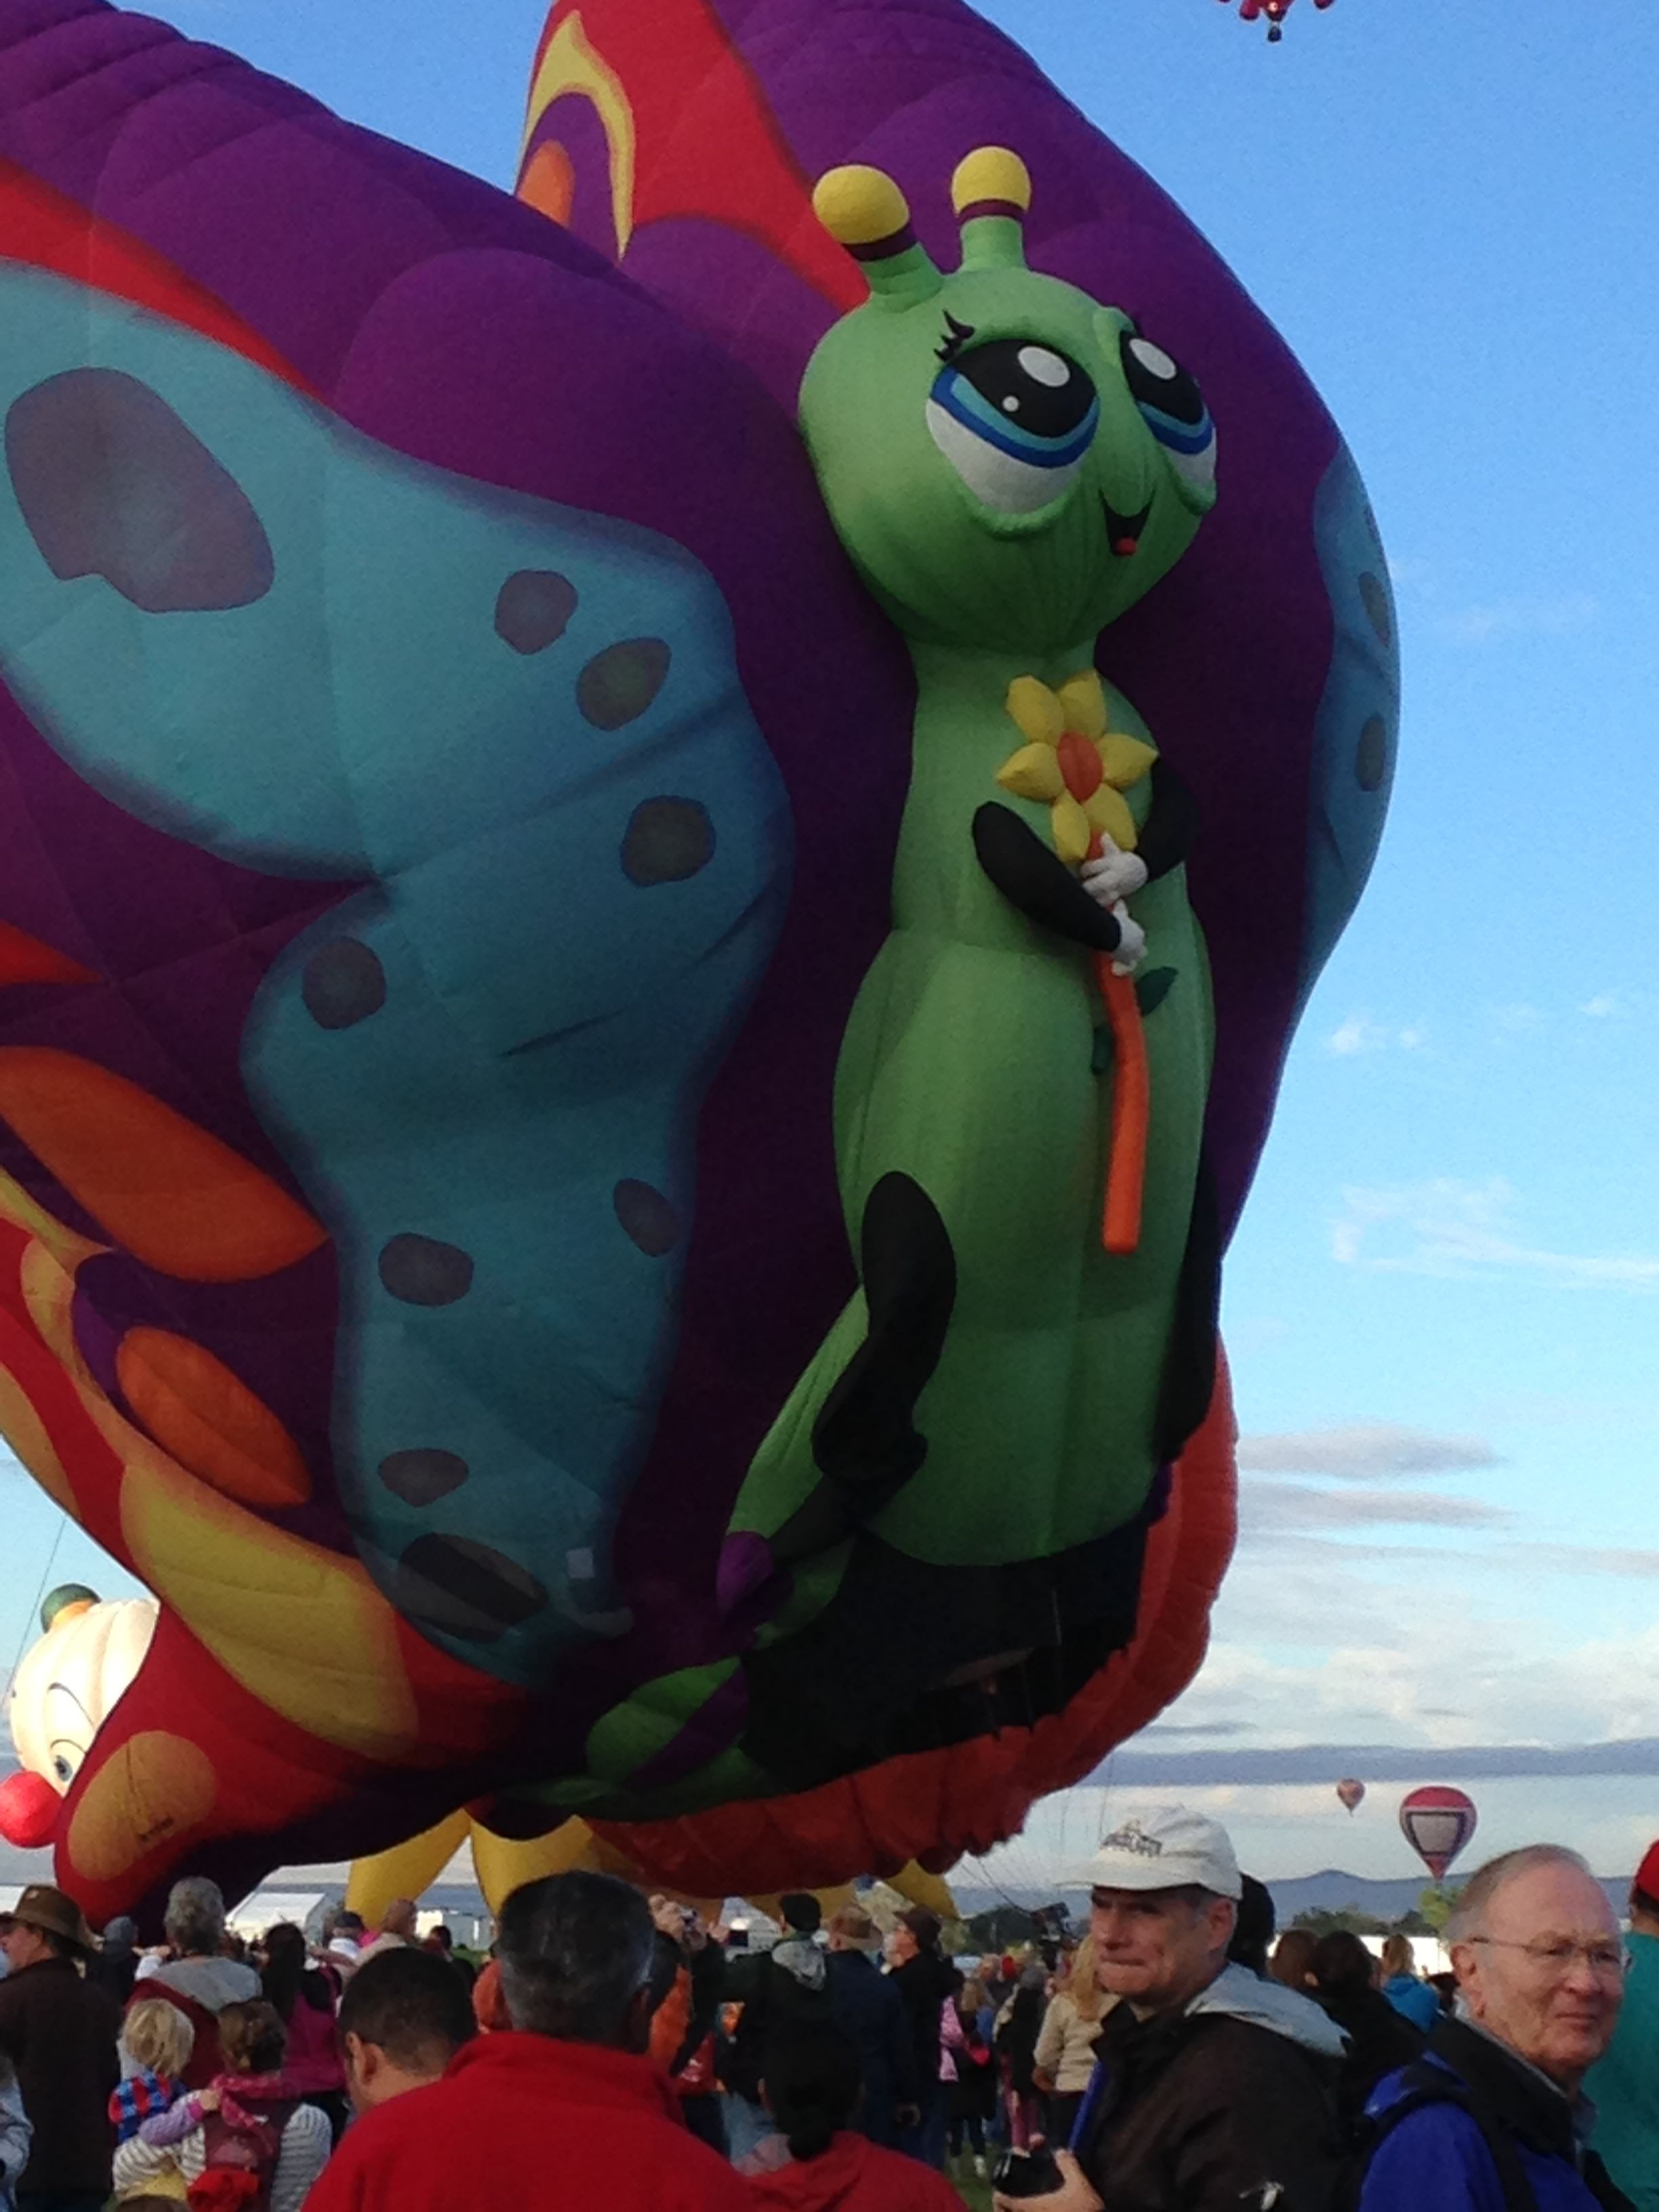 Pin by Margaret Smith on Albuquerque Balloon Festival